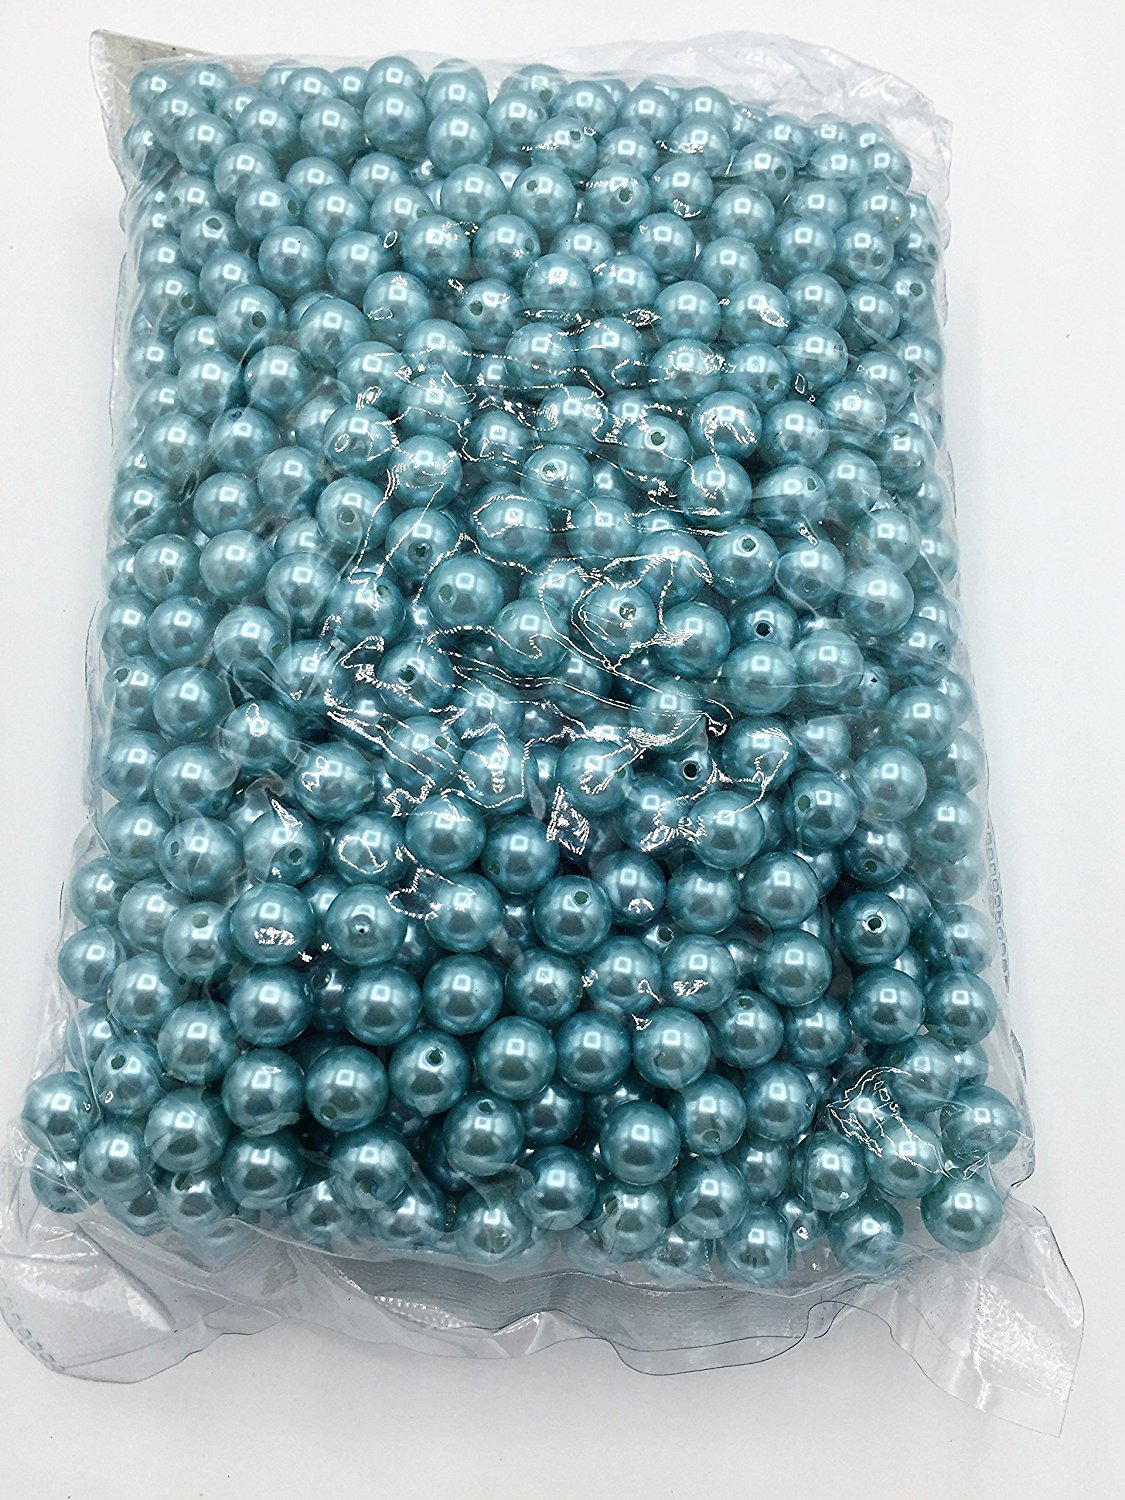 jelly big blk black balls bobalrg large beads vase fillers products teal filler deco water round